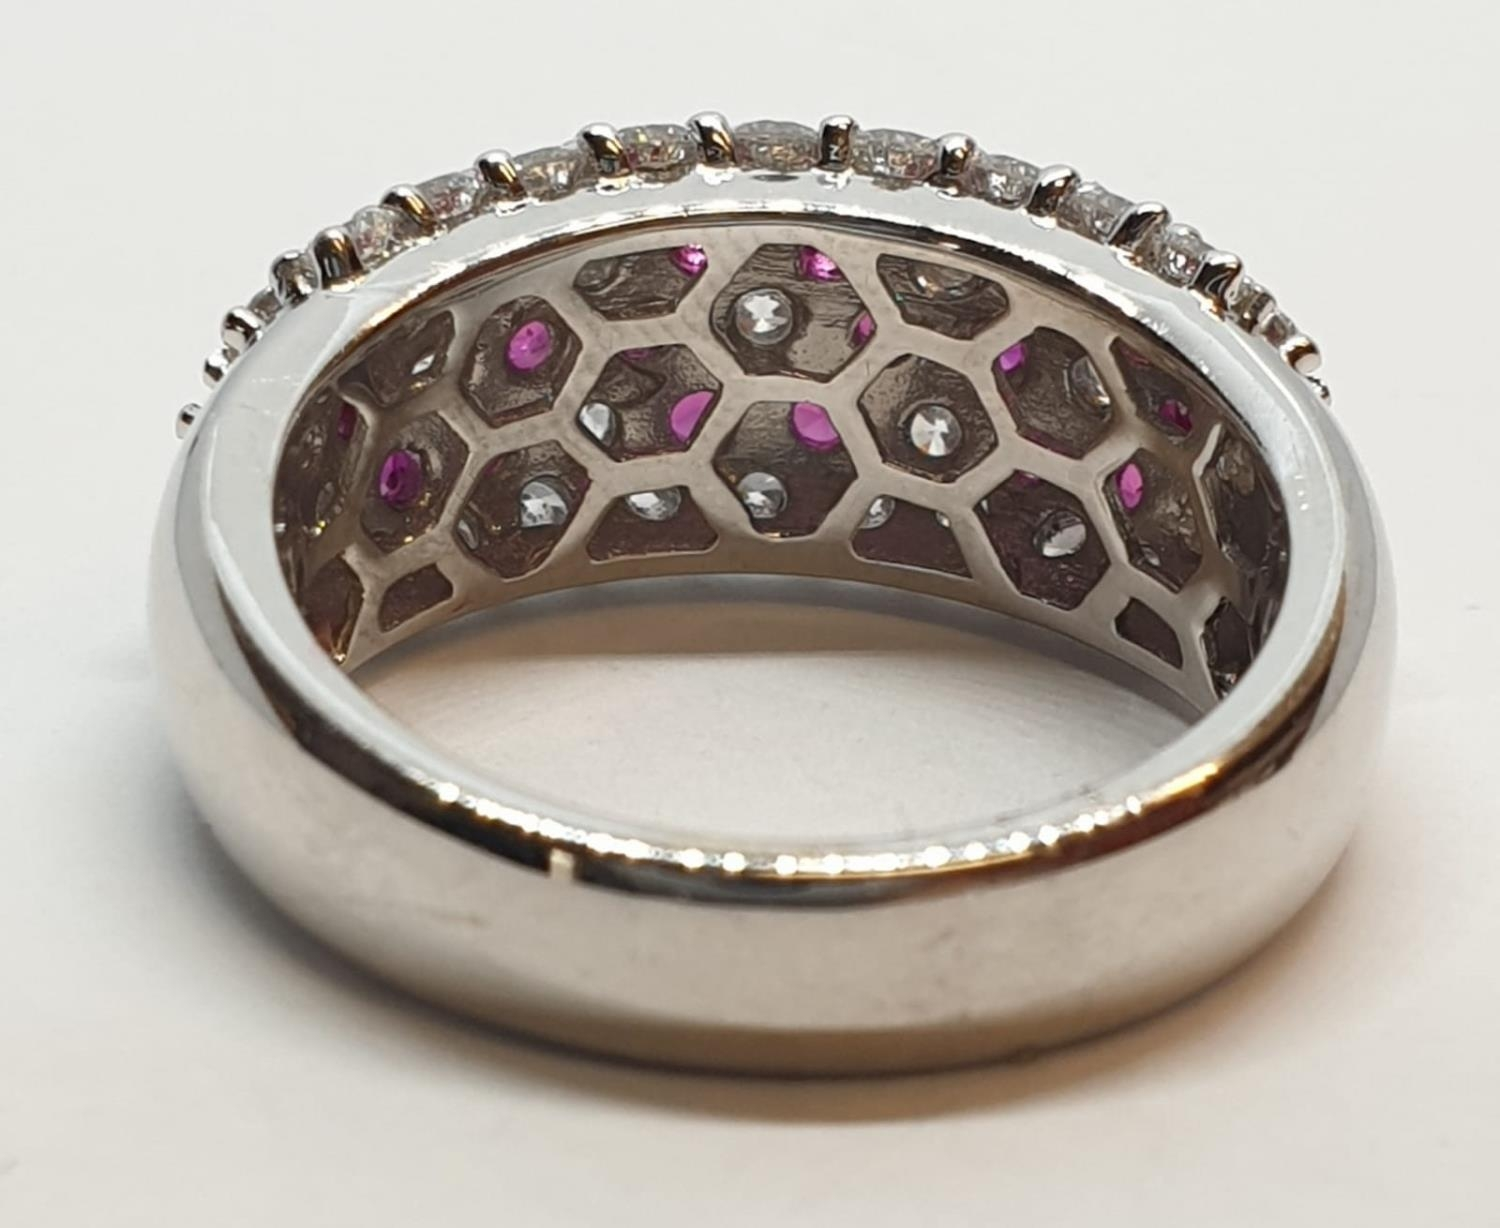 18ct white gold ring with over 1ct ruby and 1.8ct diamonds in flower design, weight 9.39g and size M - Image 6 of 11